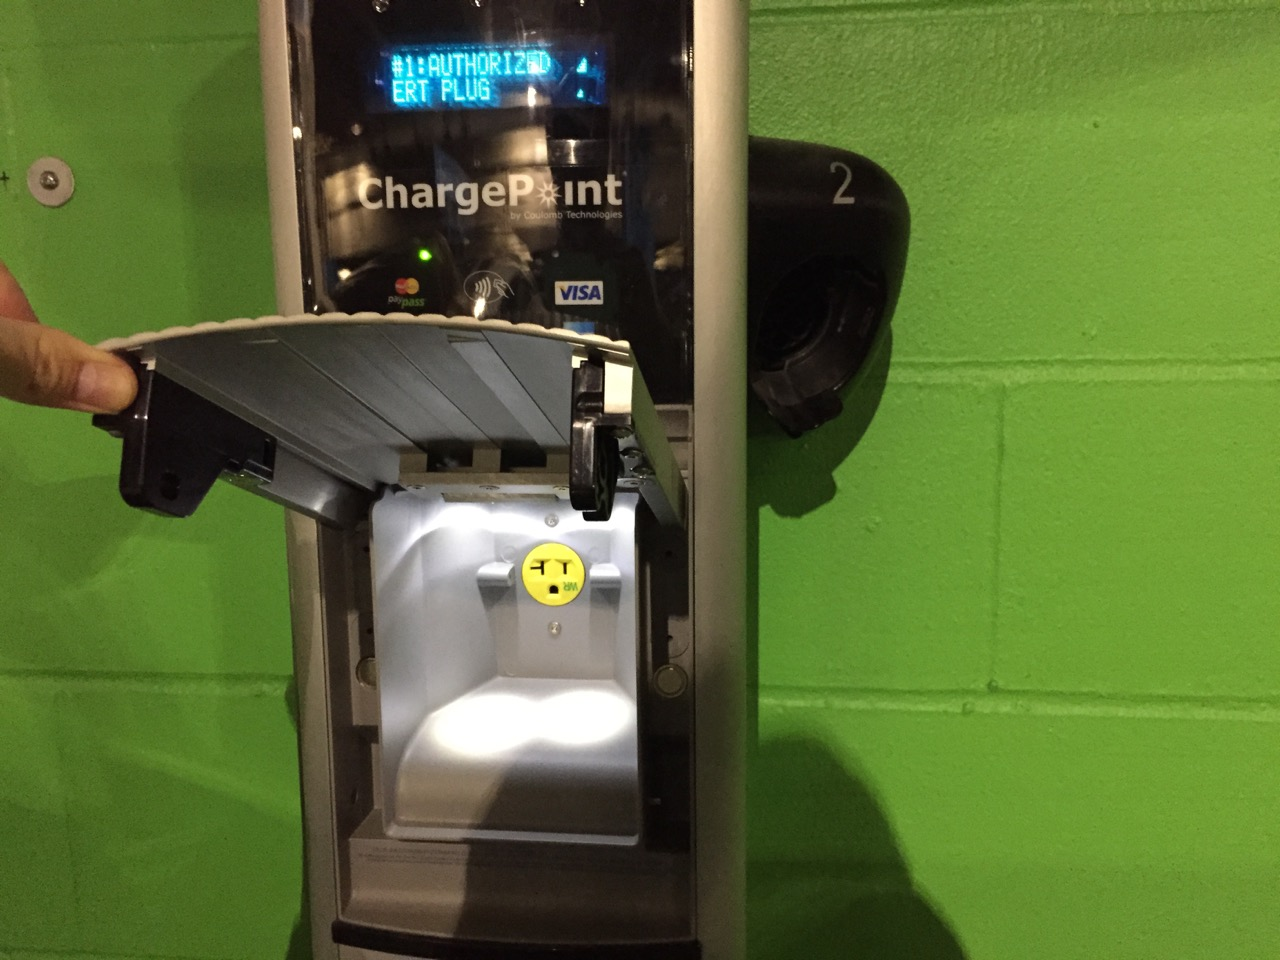 NEMA 5-15 Chargepoint